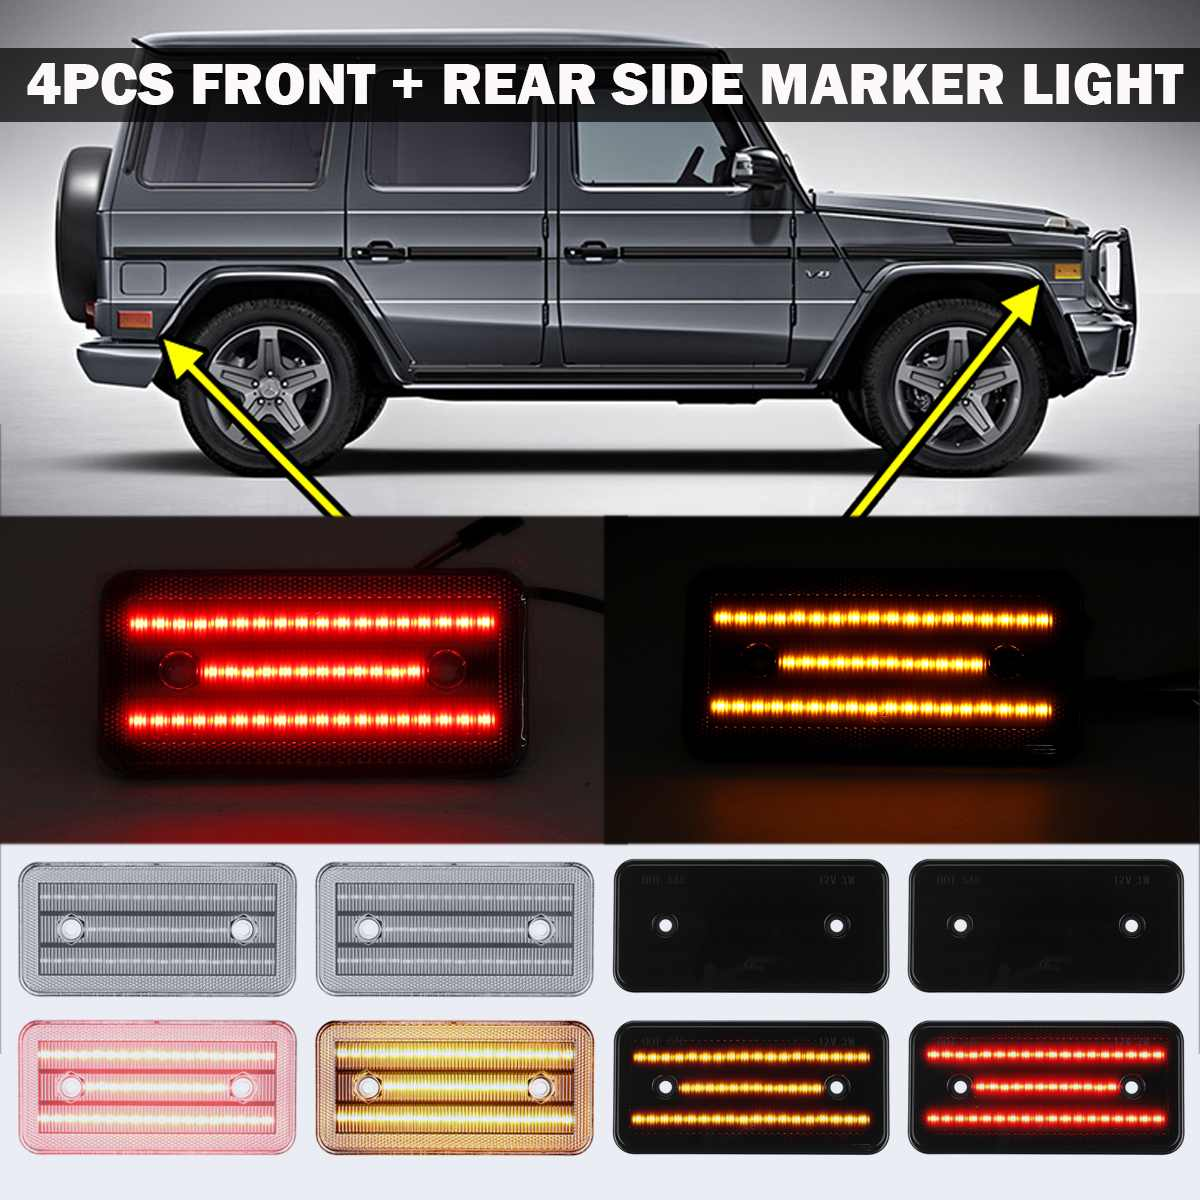 4Pcs/Set LED Side Marker Bumper Lights Turn Signal Lamps for Mercedes W463 G-Class G500 G550 <font><b>G55</b></font> G63 for <font><b>AMG</b></font> 02-14 image